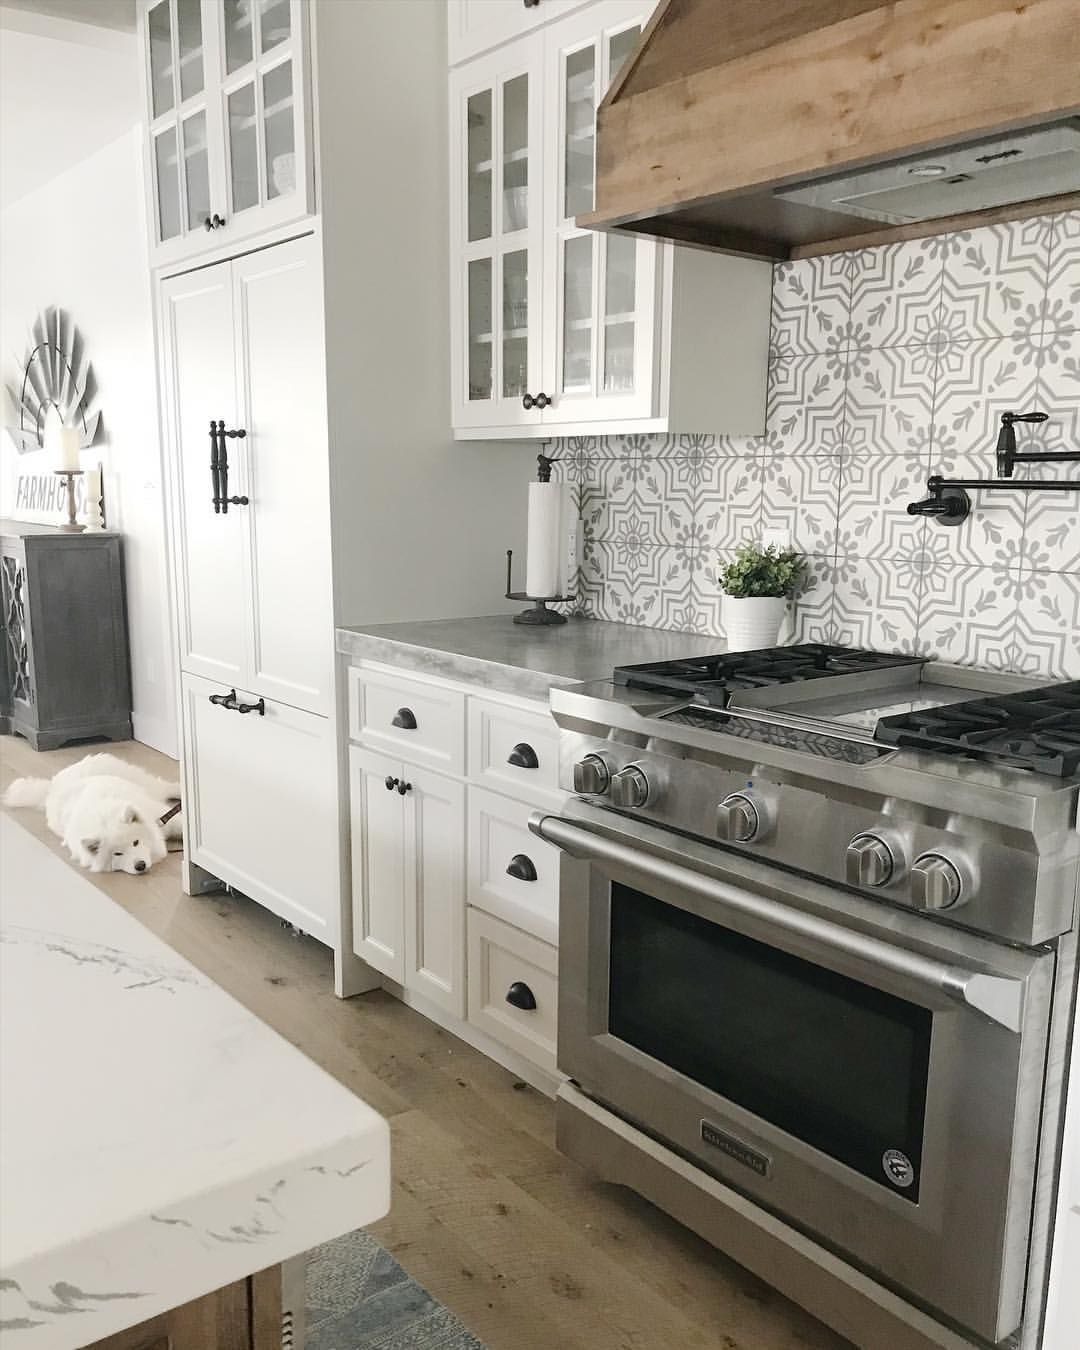 Wood Tile Kitchen Backsplash: Amazing Cement Tile Backsplash And Wood Range Hood